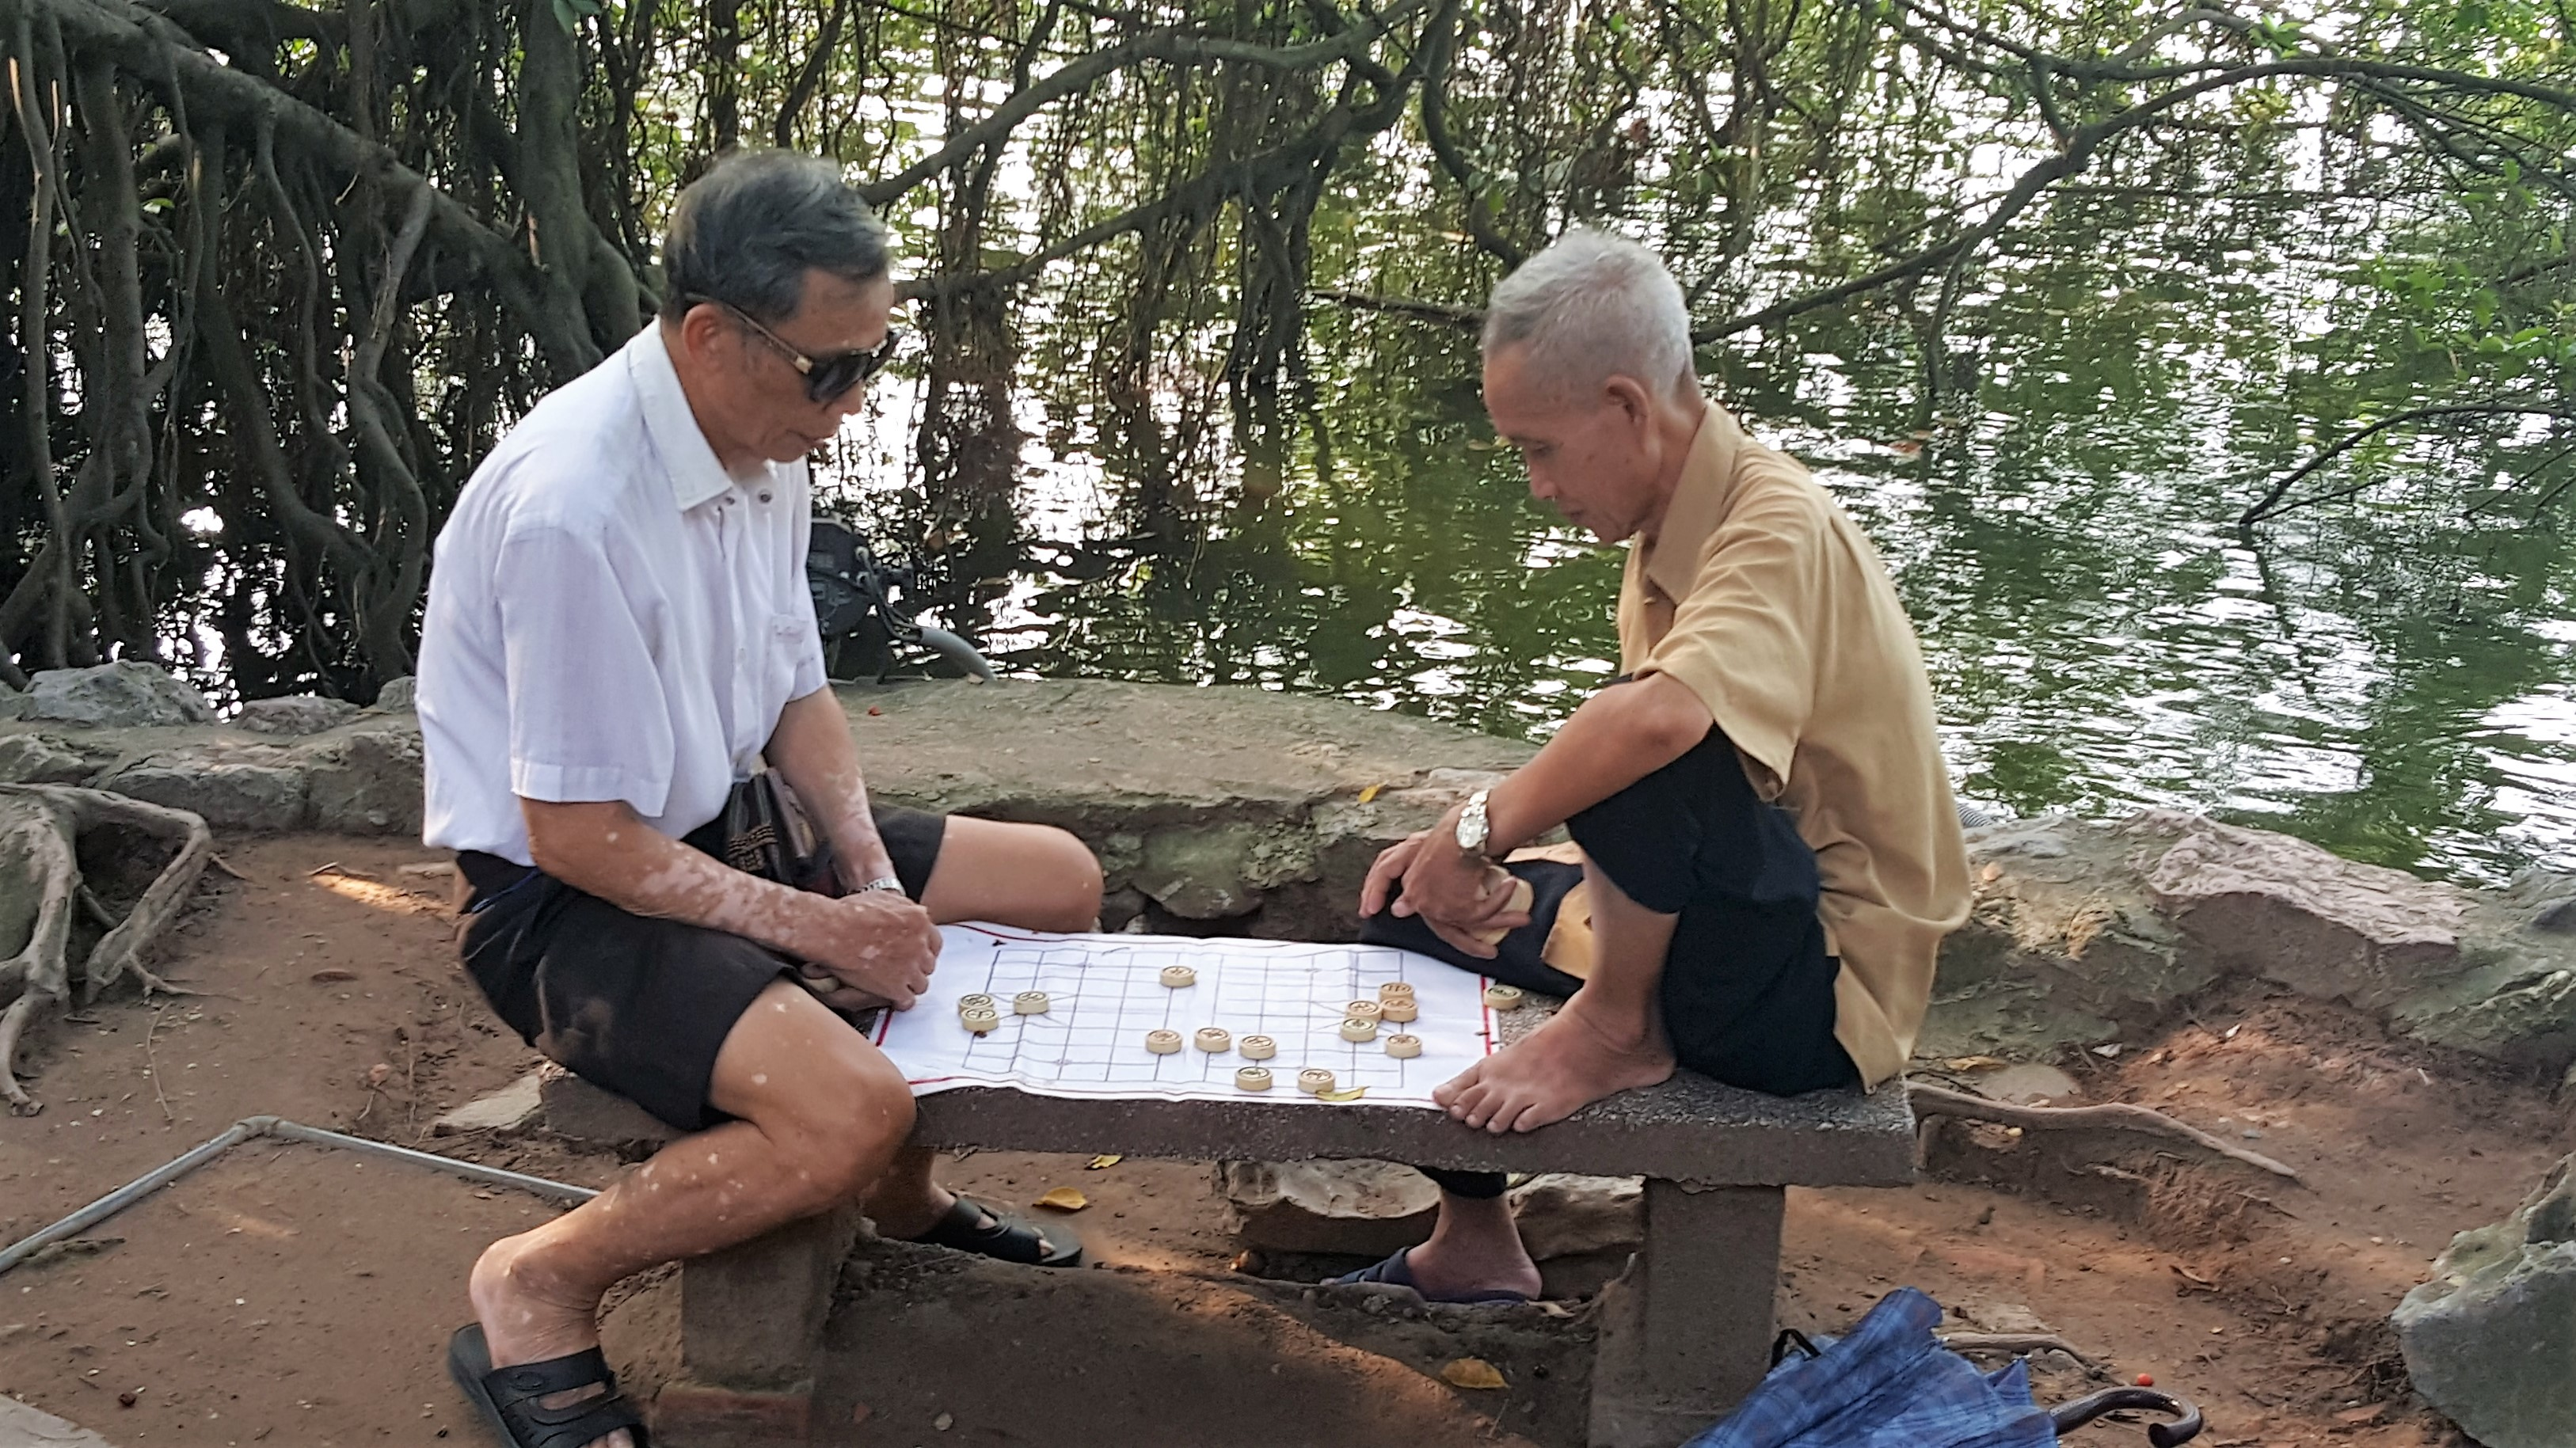 Men playing checkers in Hanoi, Vietnam